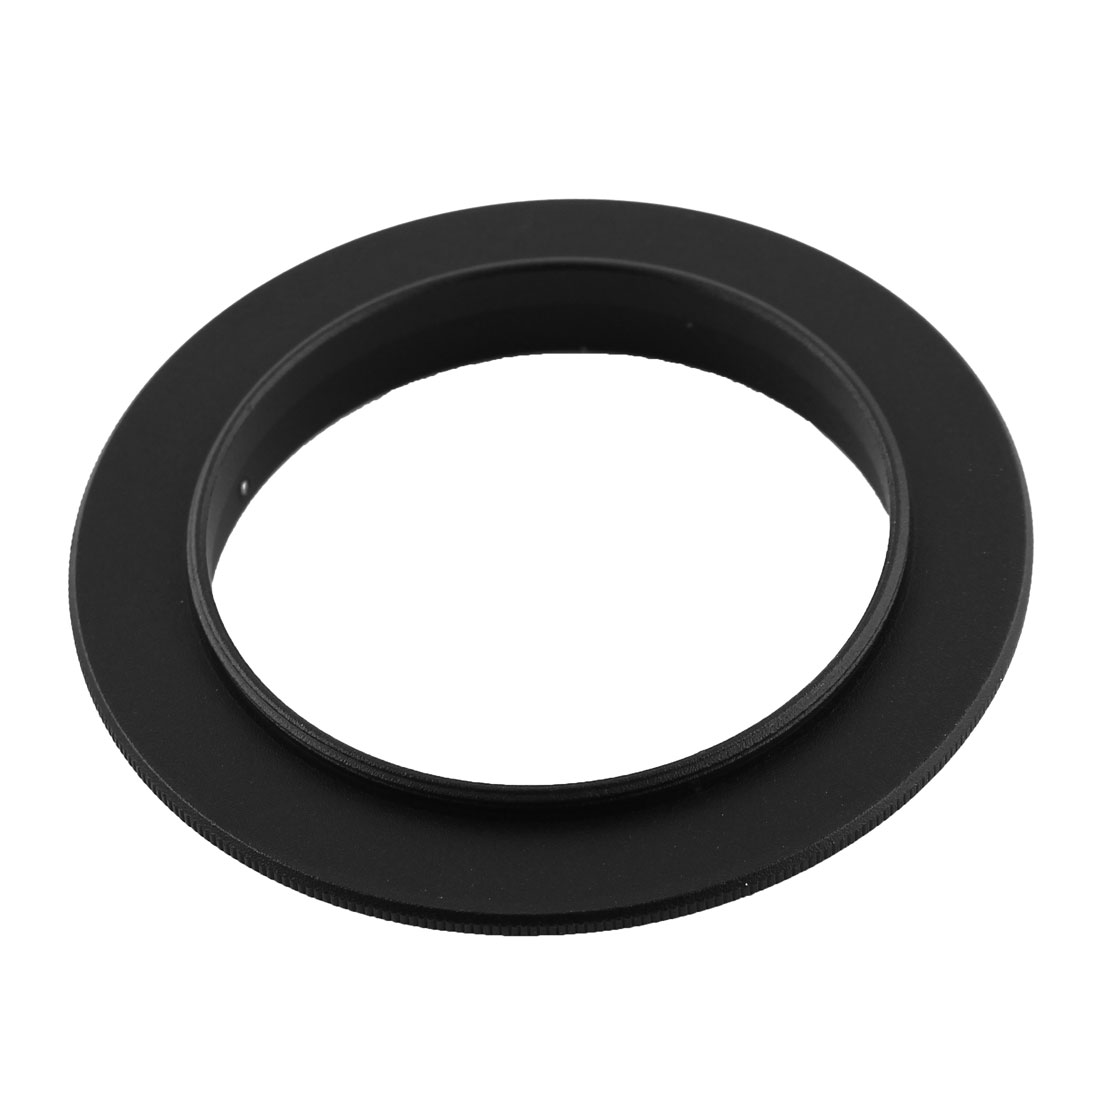 49mm Reverse Macro Lens Black Adapter Ring for Digital Camera